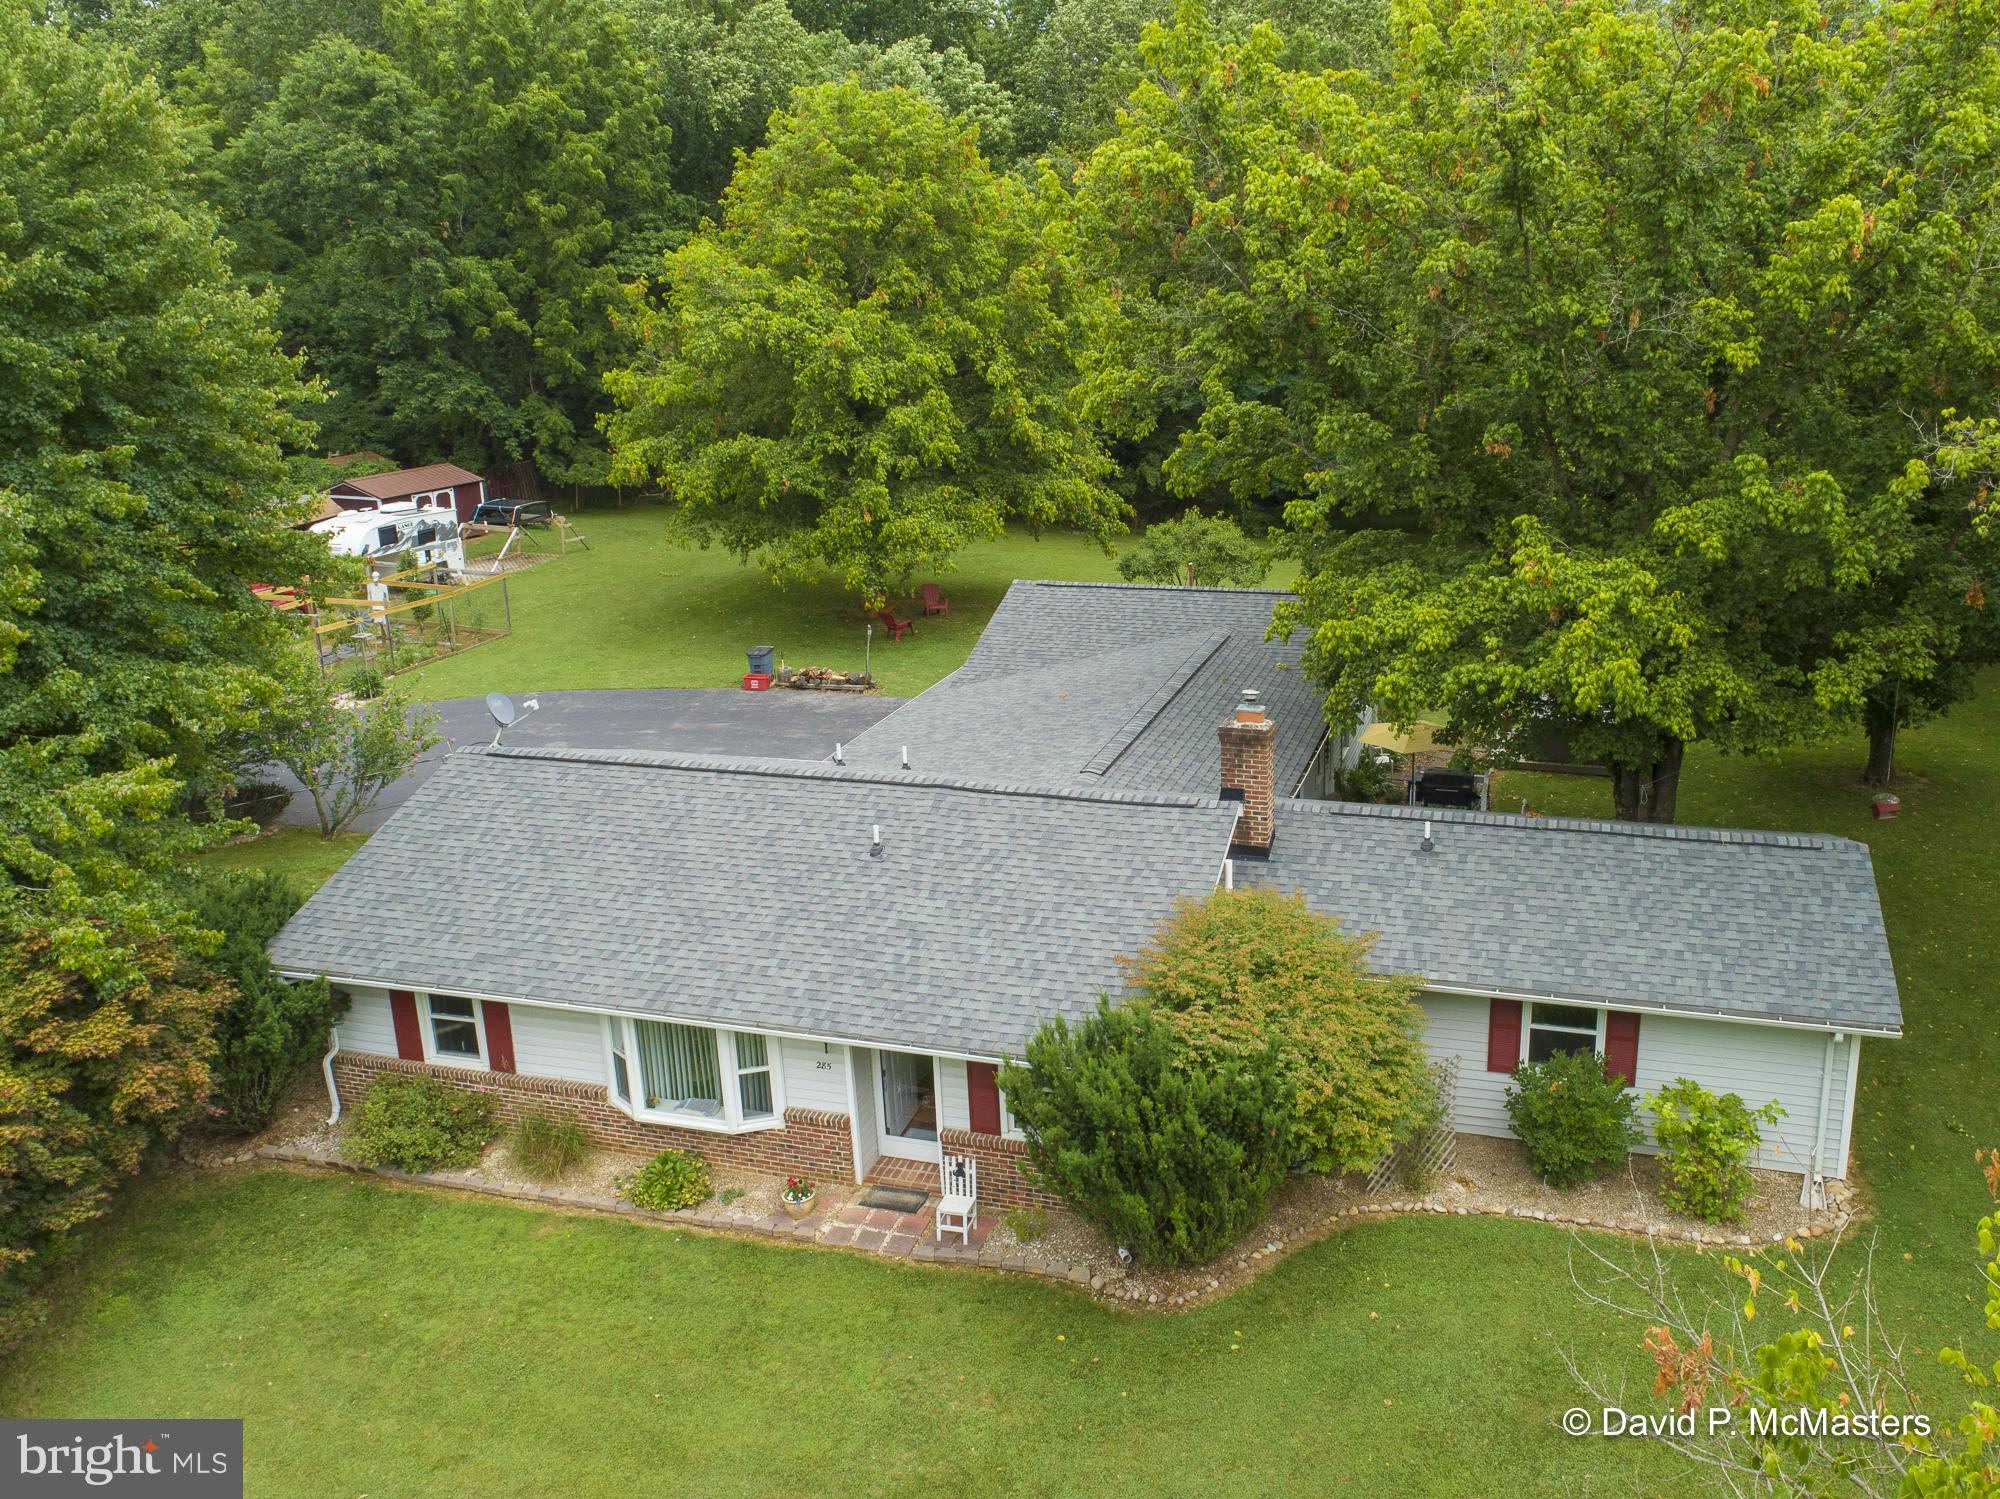 Country roads take me home to this private and cozy rancher offering functional & well maintained on